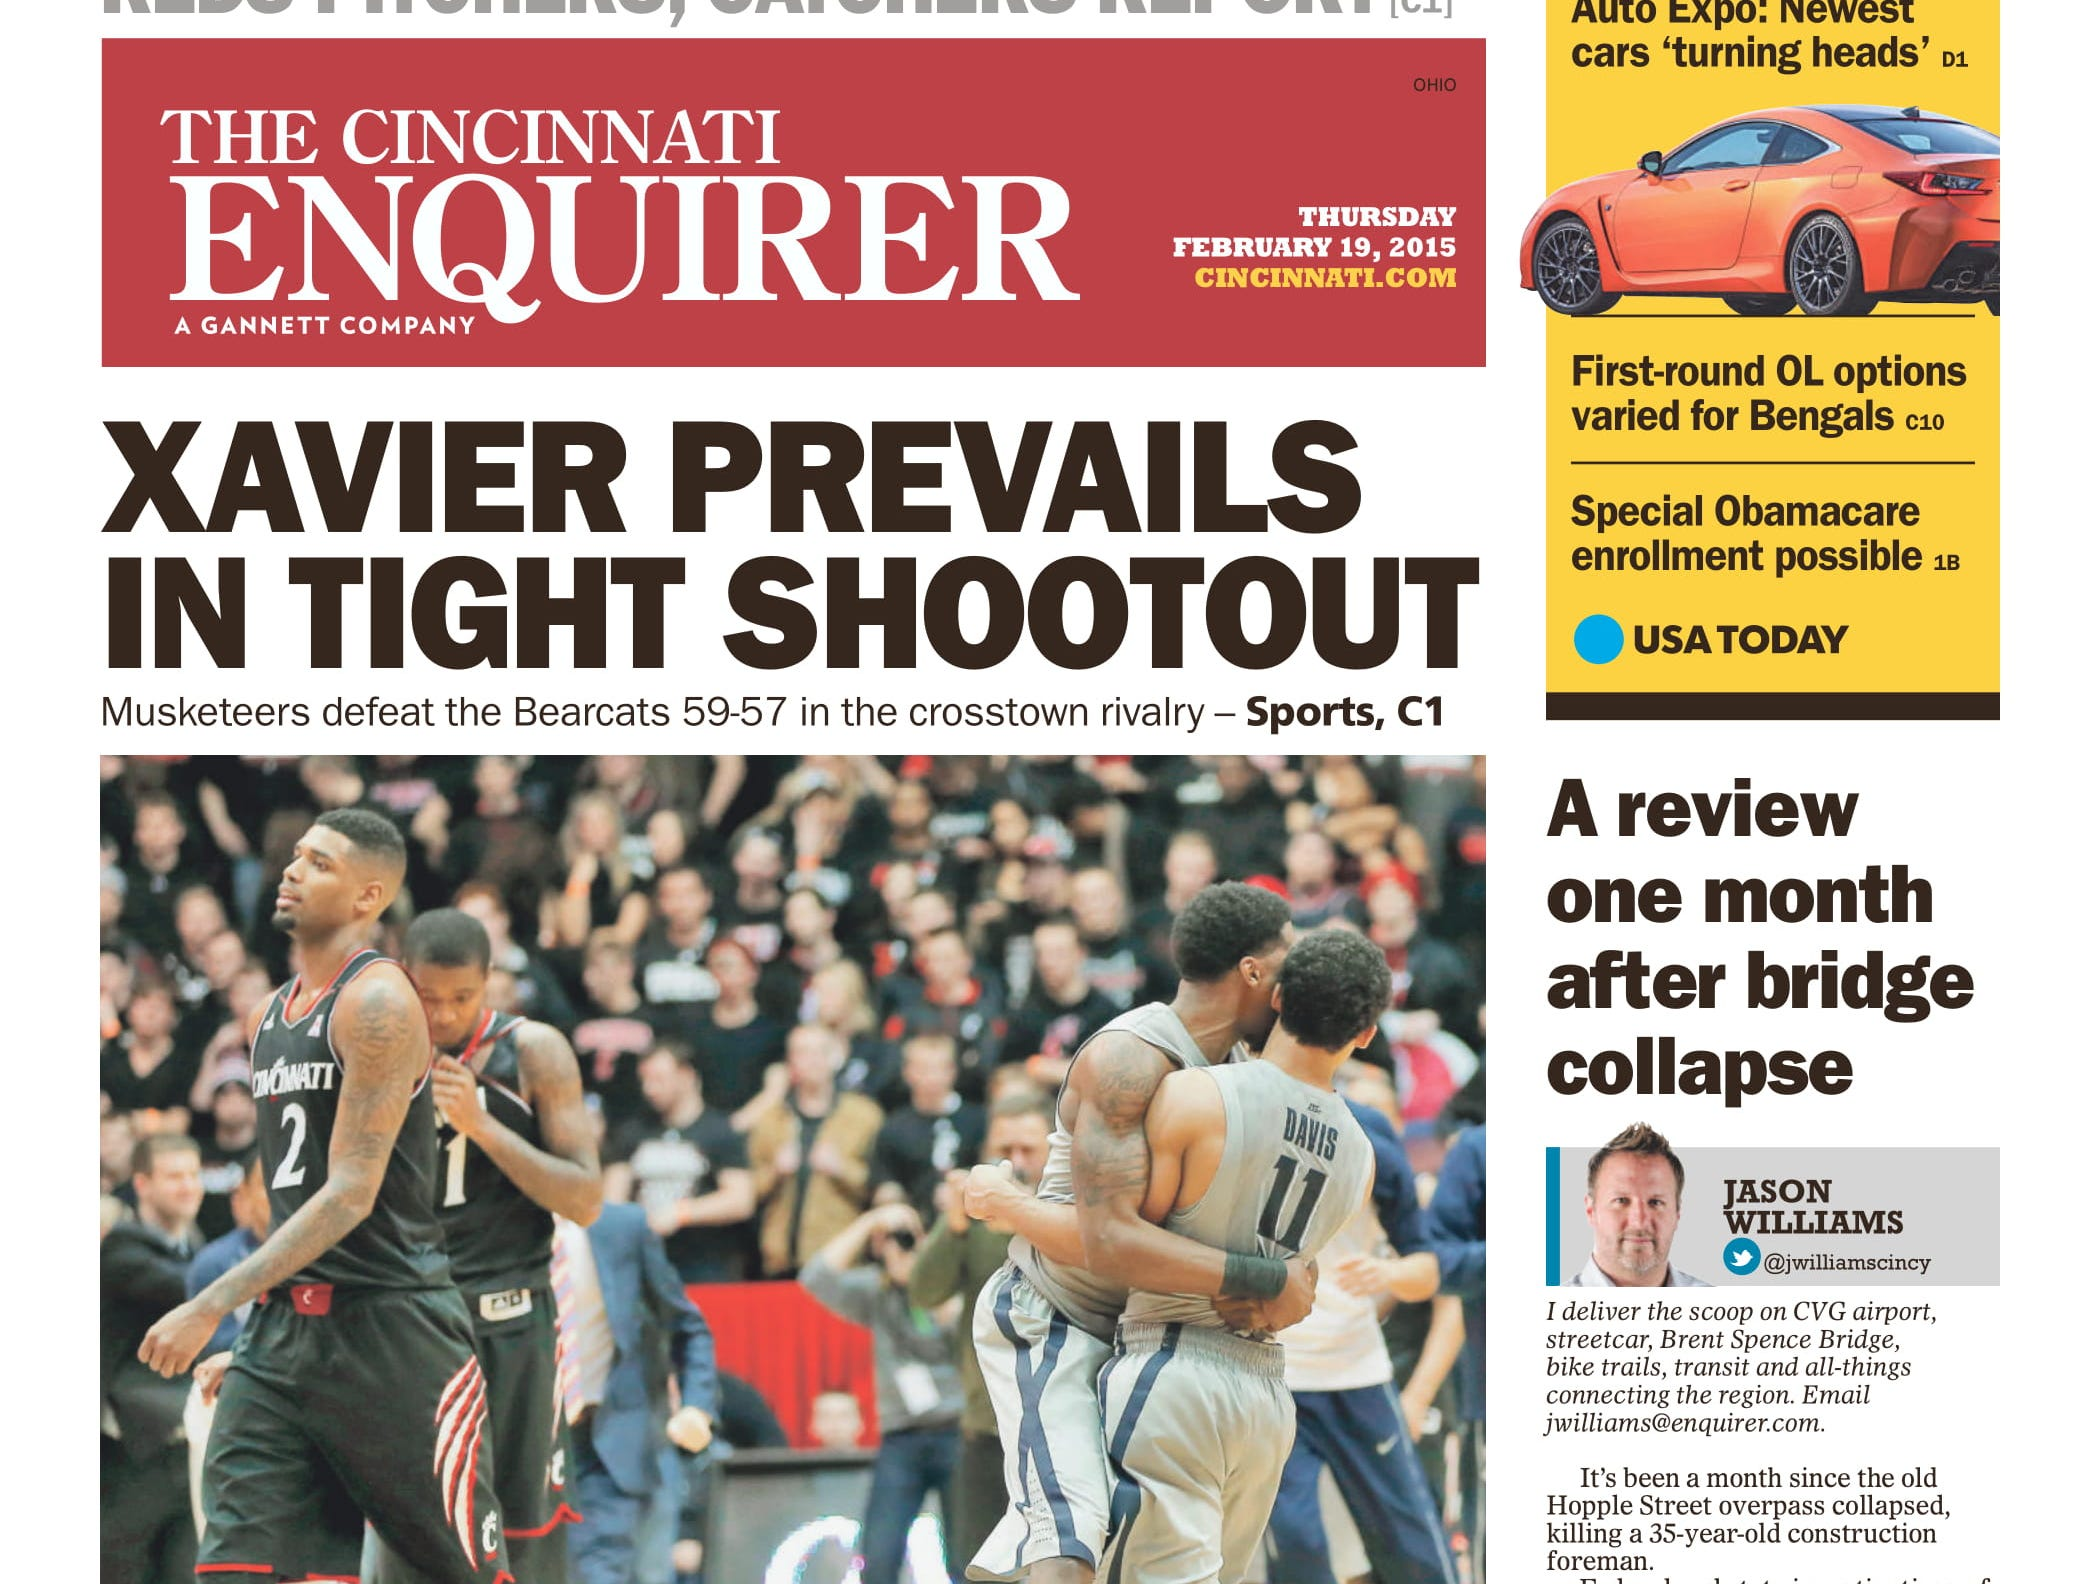 The 2014-15 Crosstown Shootout returned to campus, this time Cincinnati's Fifth Third Arena. Xavier managed the road win, though, by a 59-57 score.